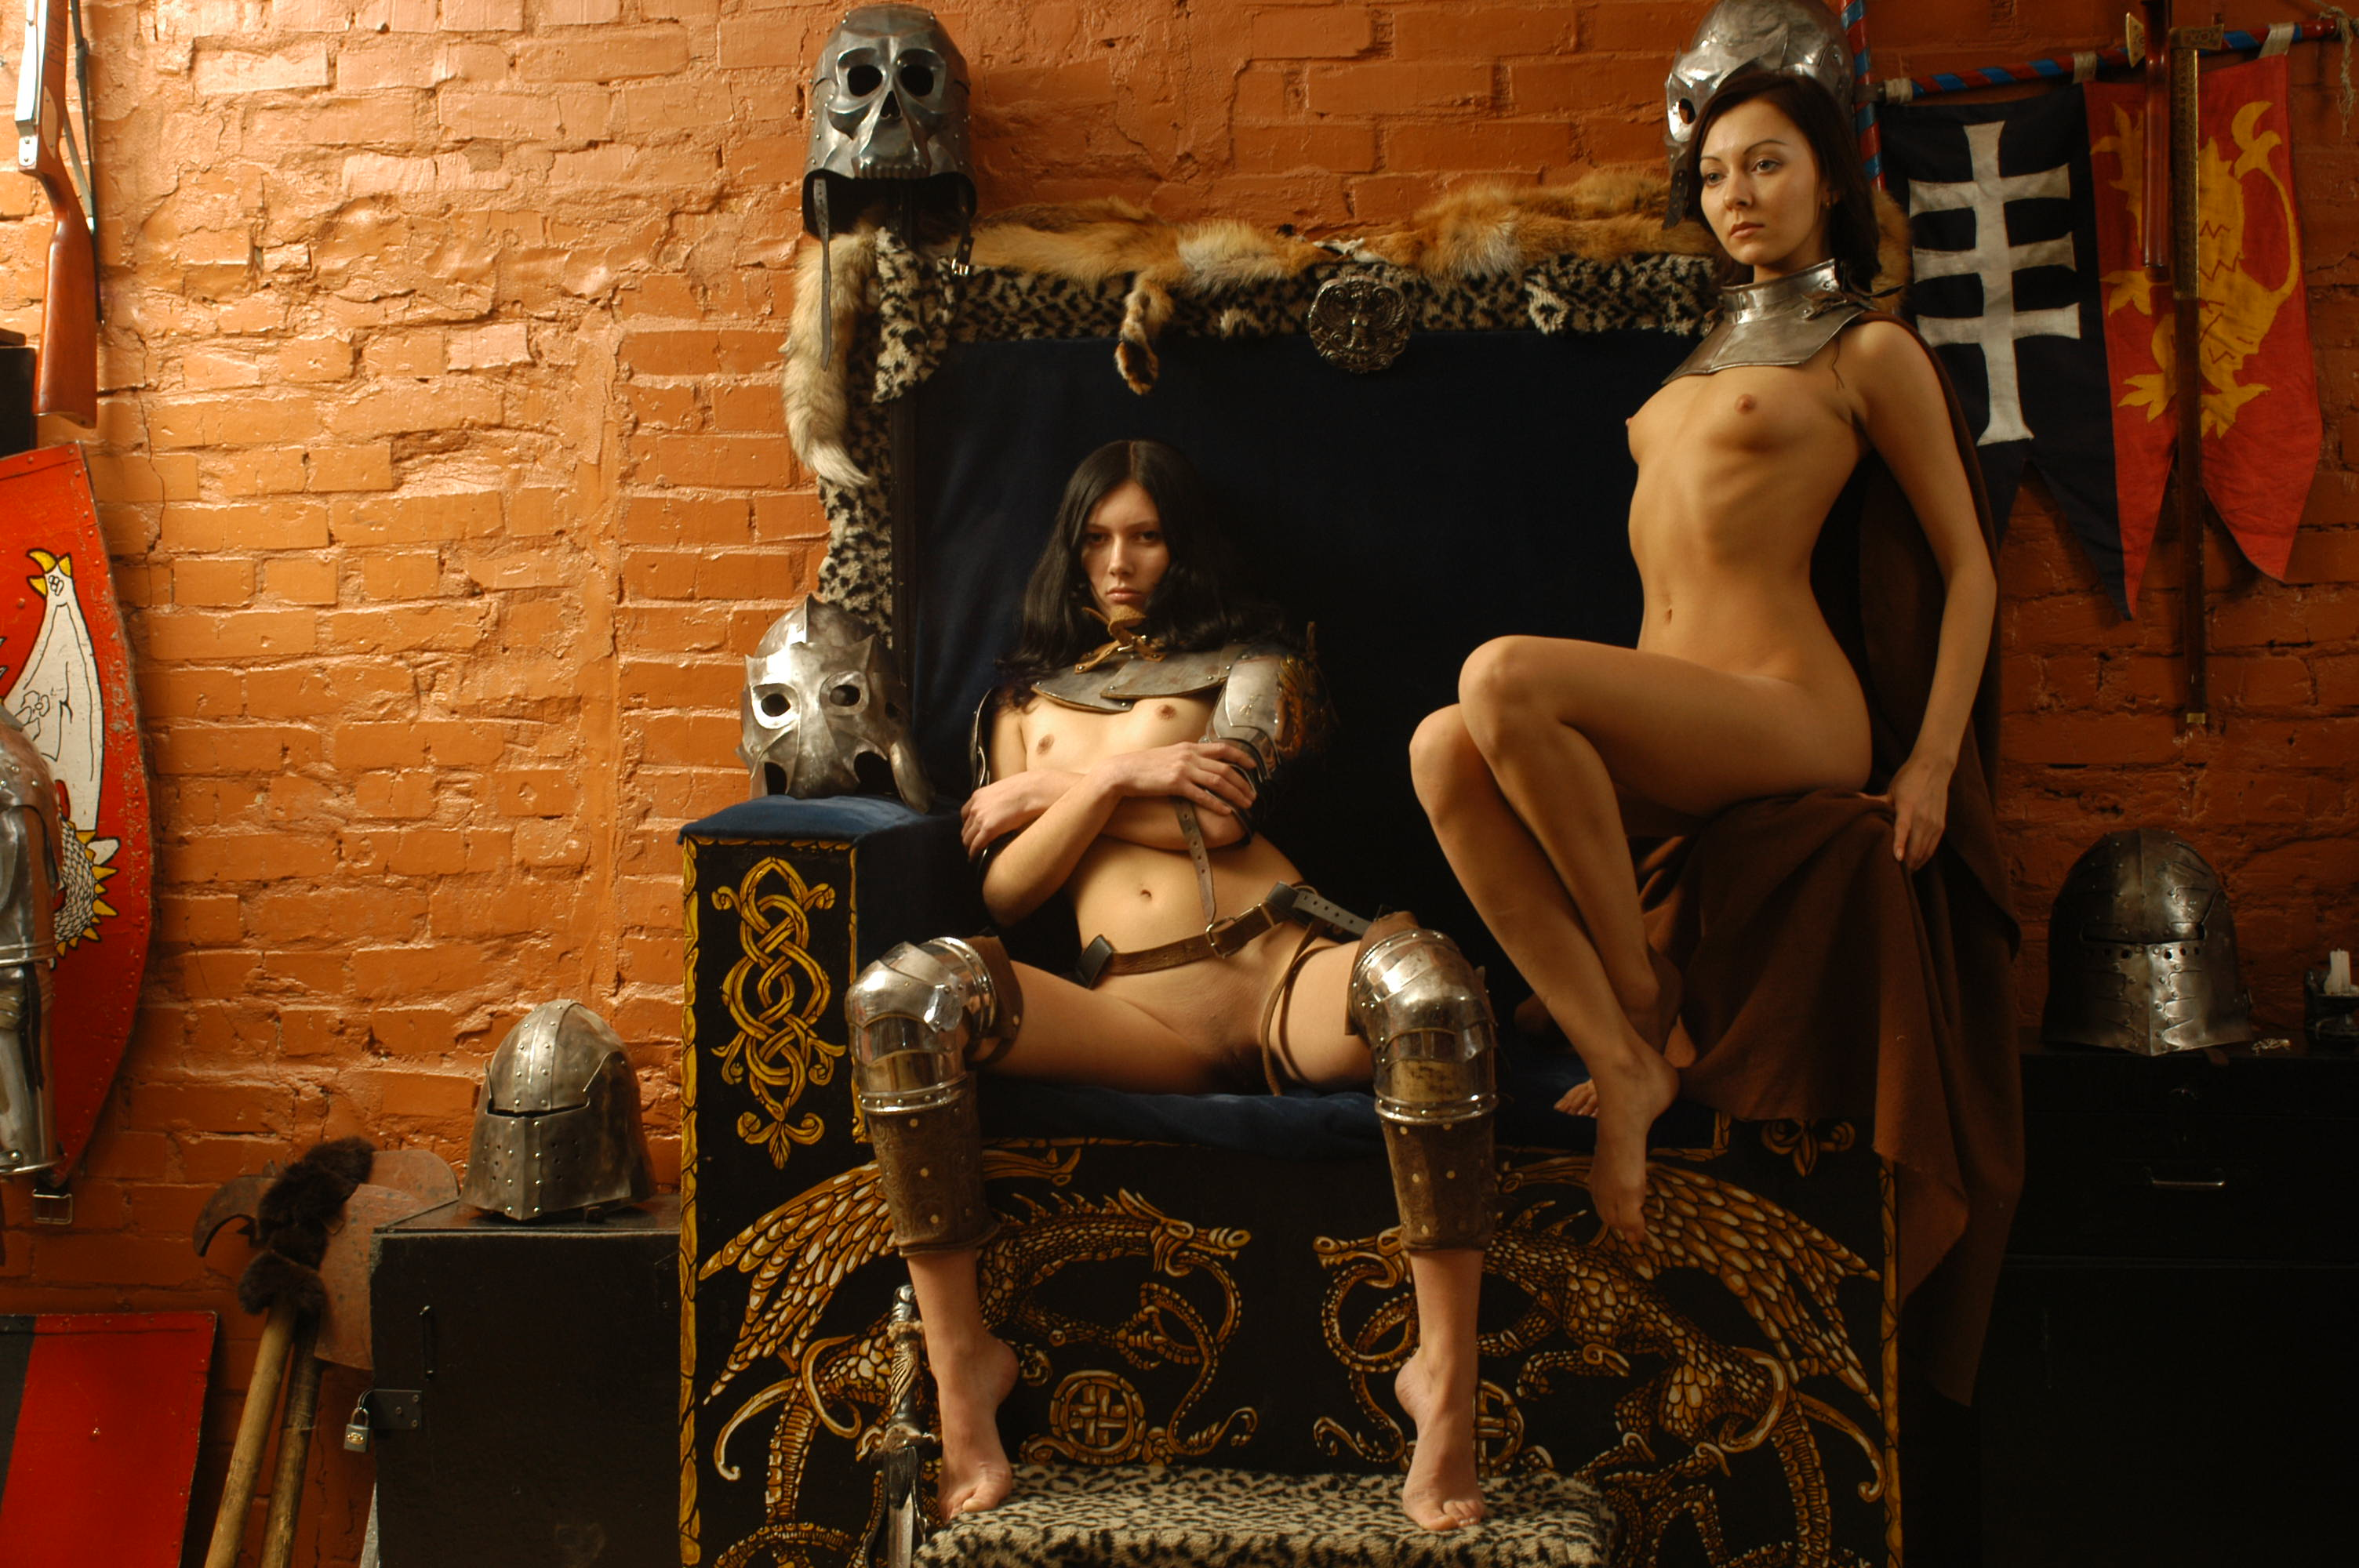 Erotic warrior gallery nude scenes